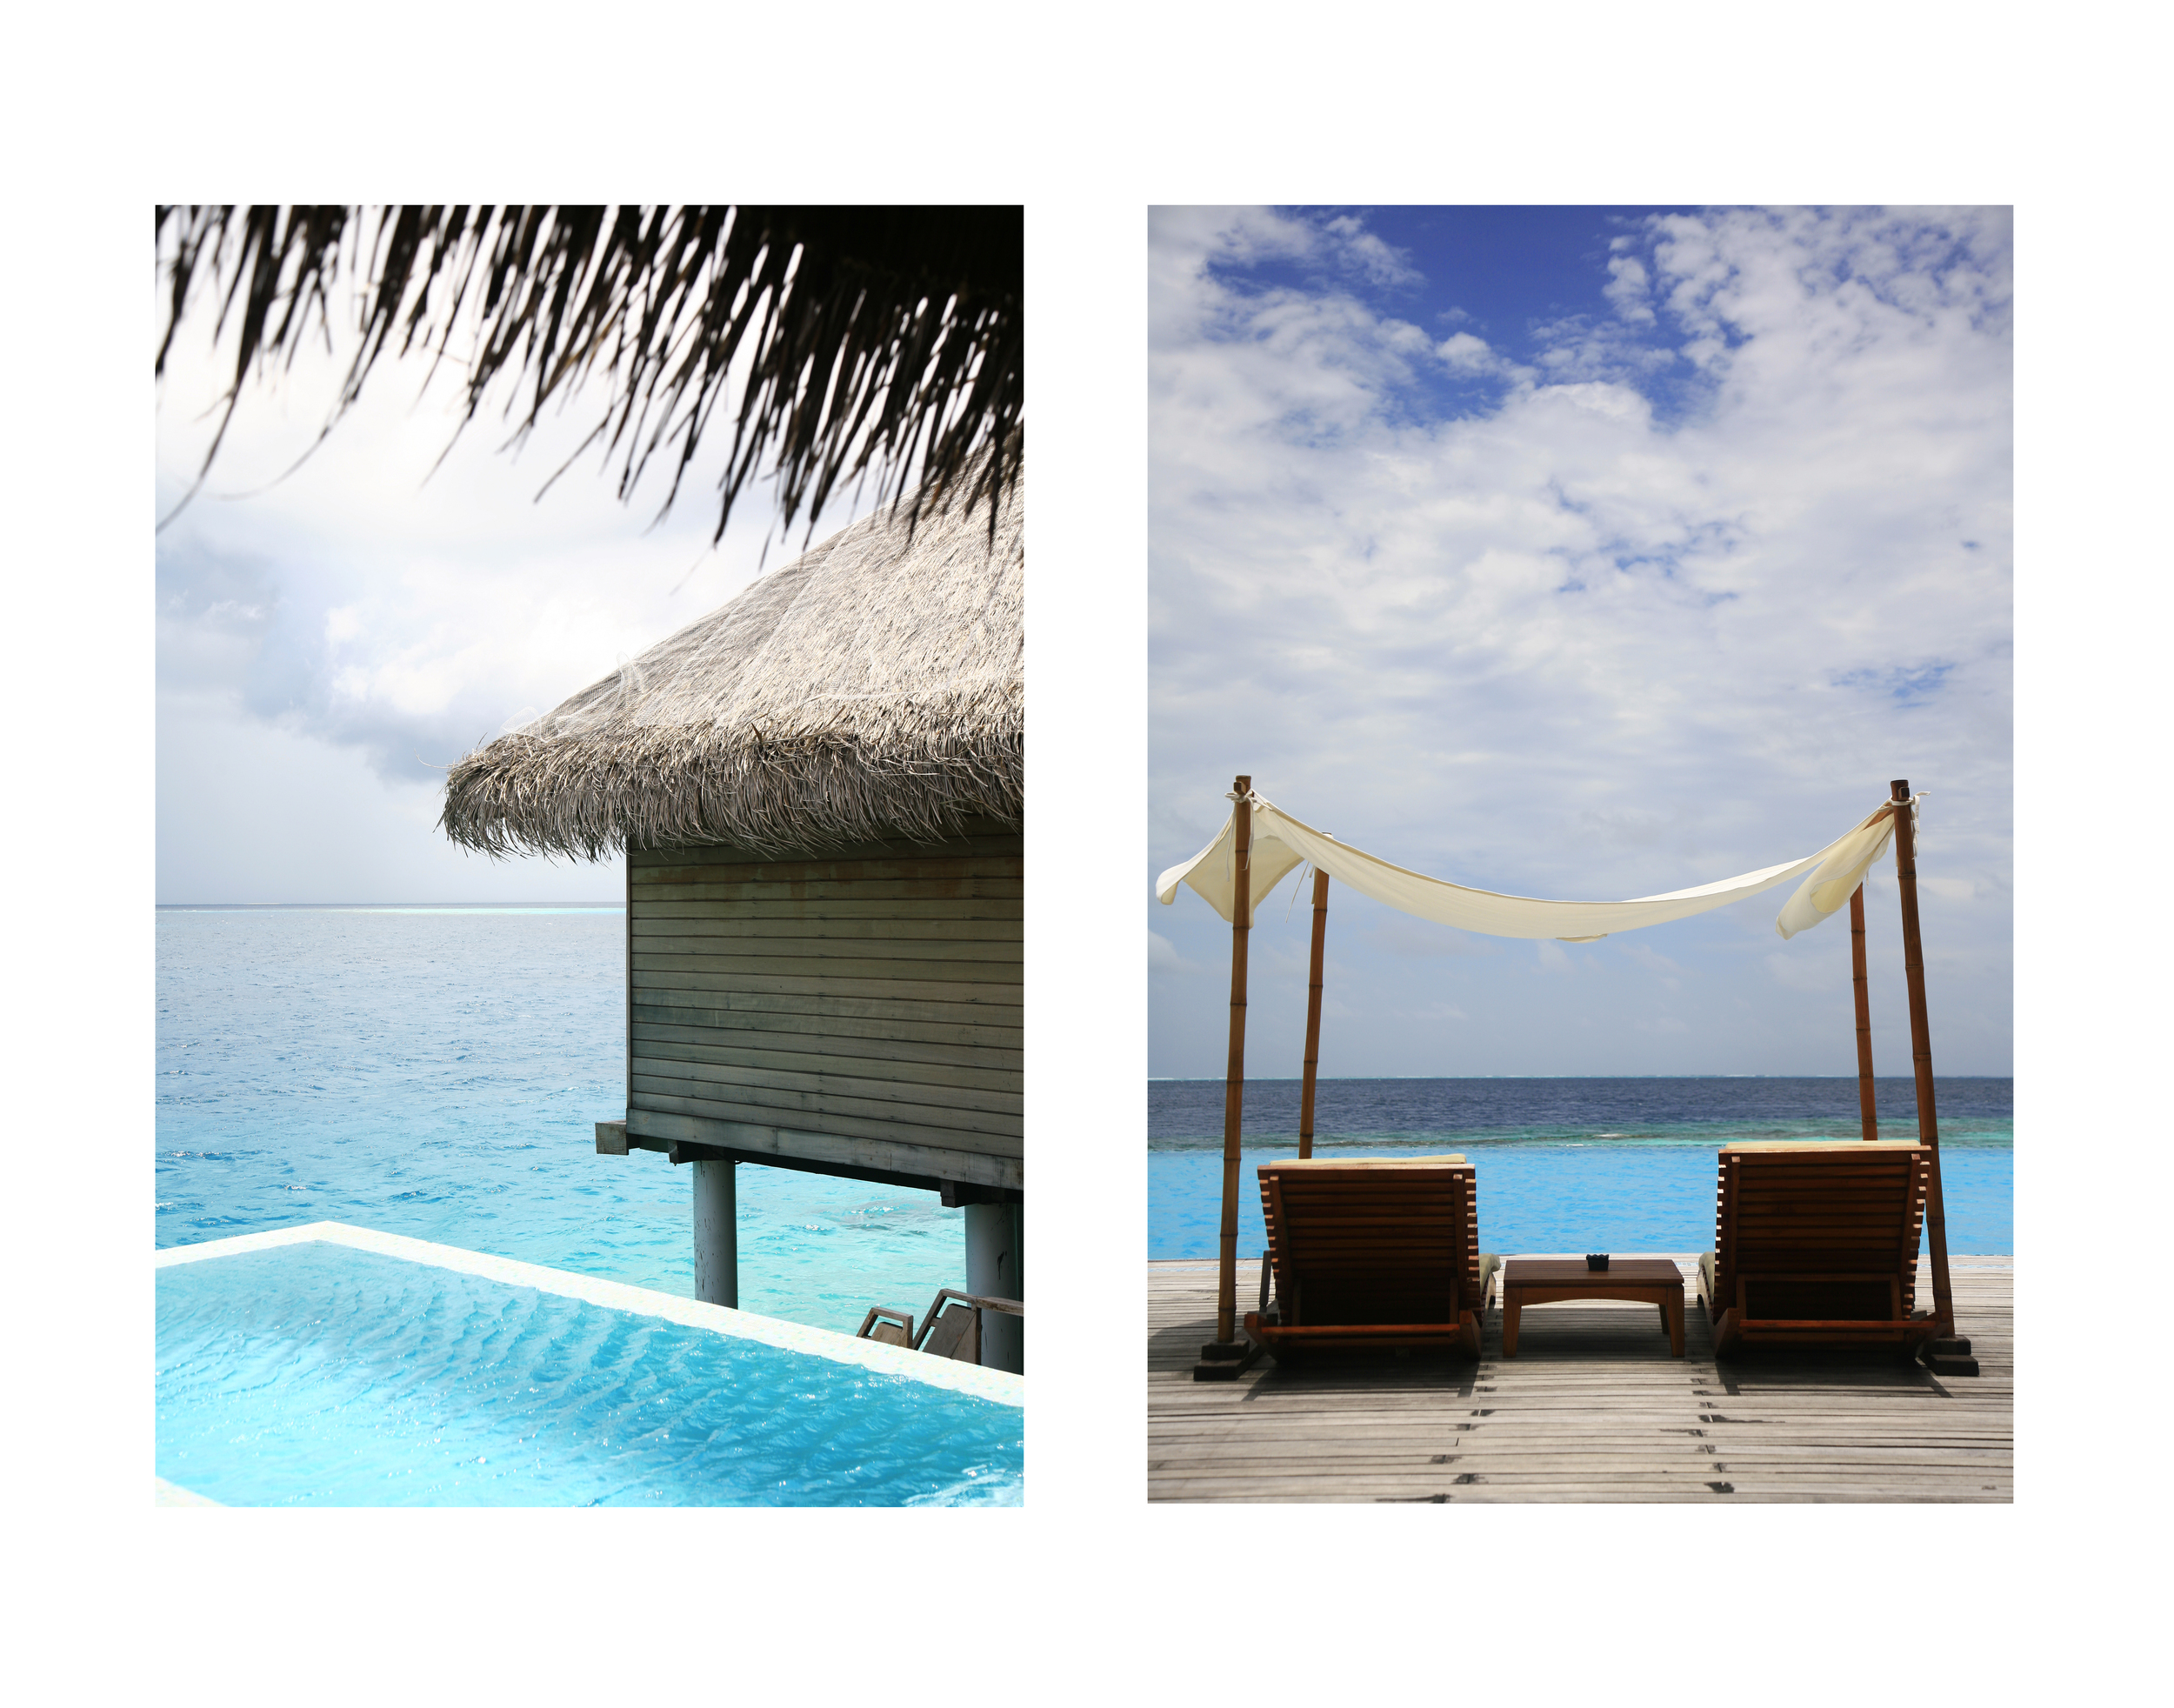 Maldives Pool & Beds.jpg